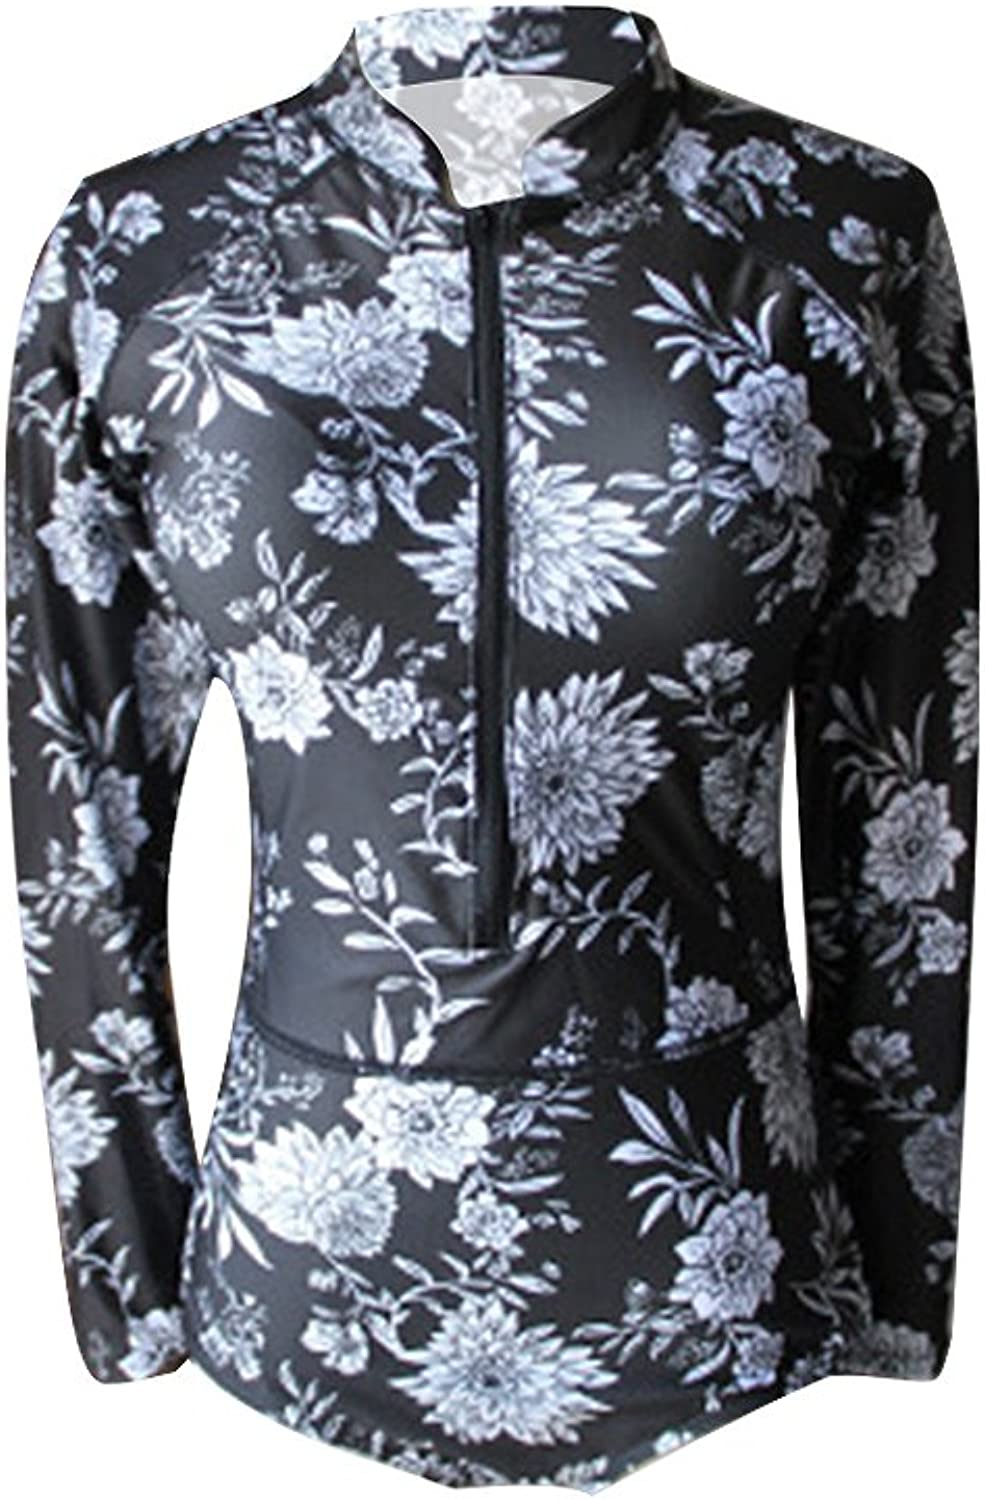 Long Sleeve One Piece Swimsuit with A Beautiful Floral Pattern Rash Guard Zip UV Predection Surfing Swimwear Bathing Suits